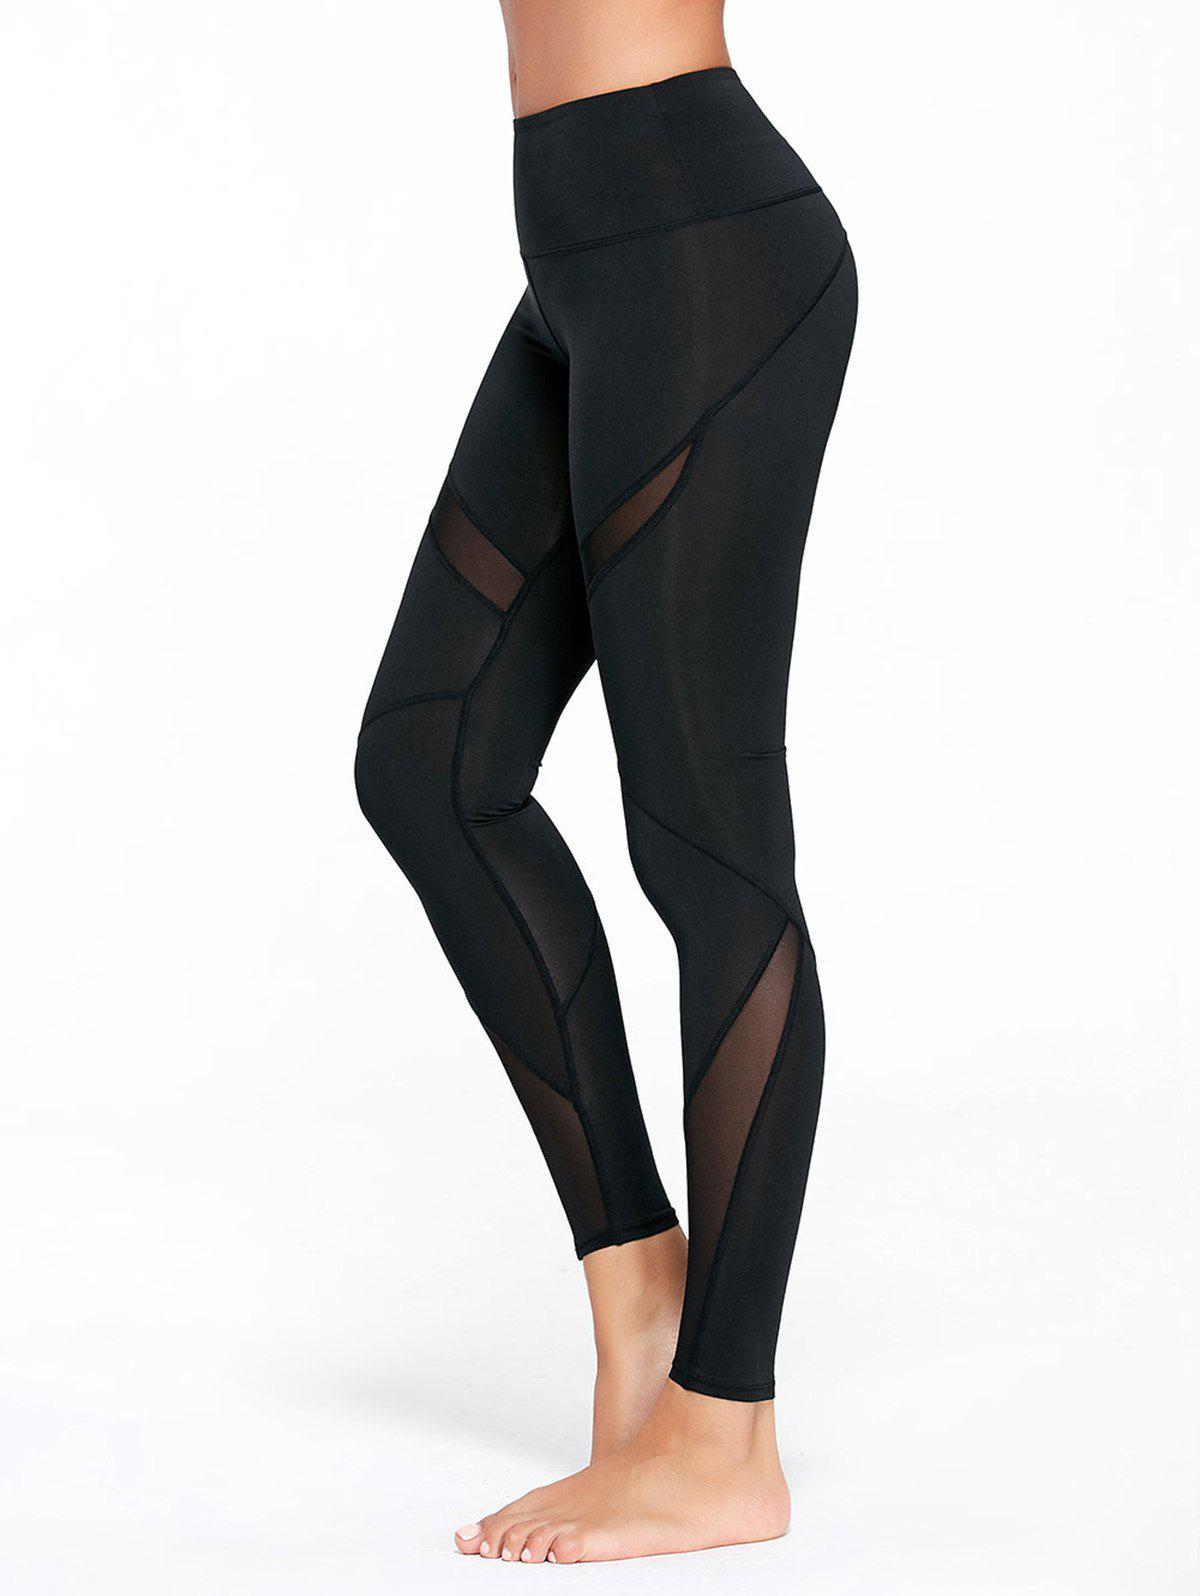 High Waisted Mesh Panel Workout LeggingsWOMEN<br><br>Size: S; Color: BLACK; Style: Fashion; Length: Ninth; Material: Polyester,Spandex; Fit Type: Skinny; Waist Type: High; Closure Type: Elastic Waist; Pattern Type: Solid; Pant Style: Pencil Pants; Elasticity: Elastic; Weight: 0.2600kg; Package Contents: 1 x Leggings;